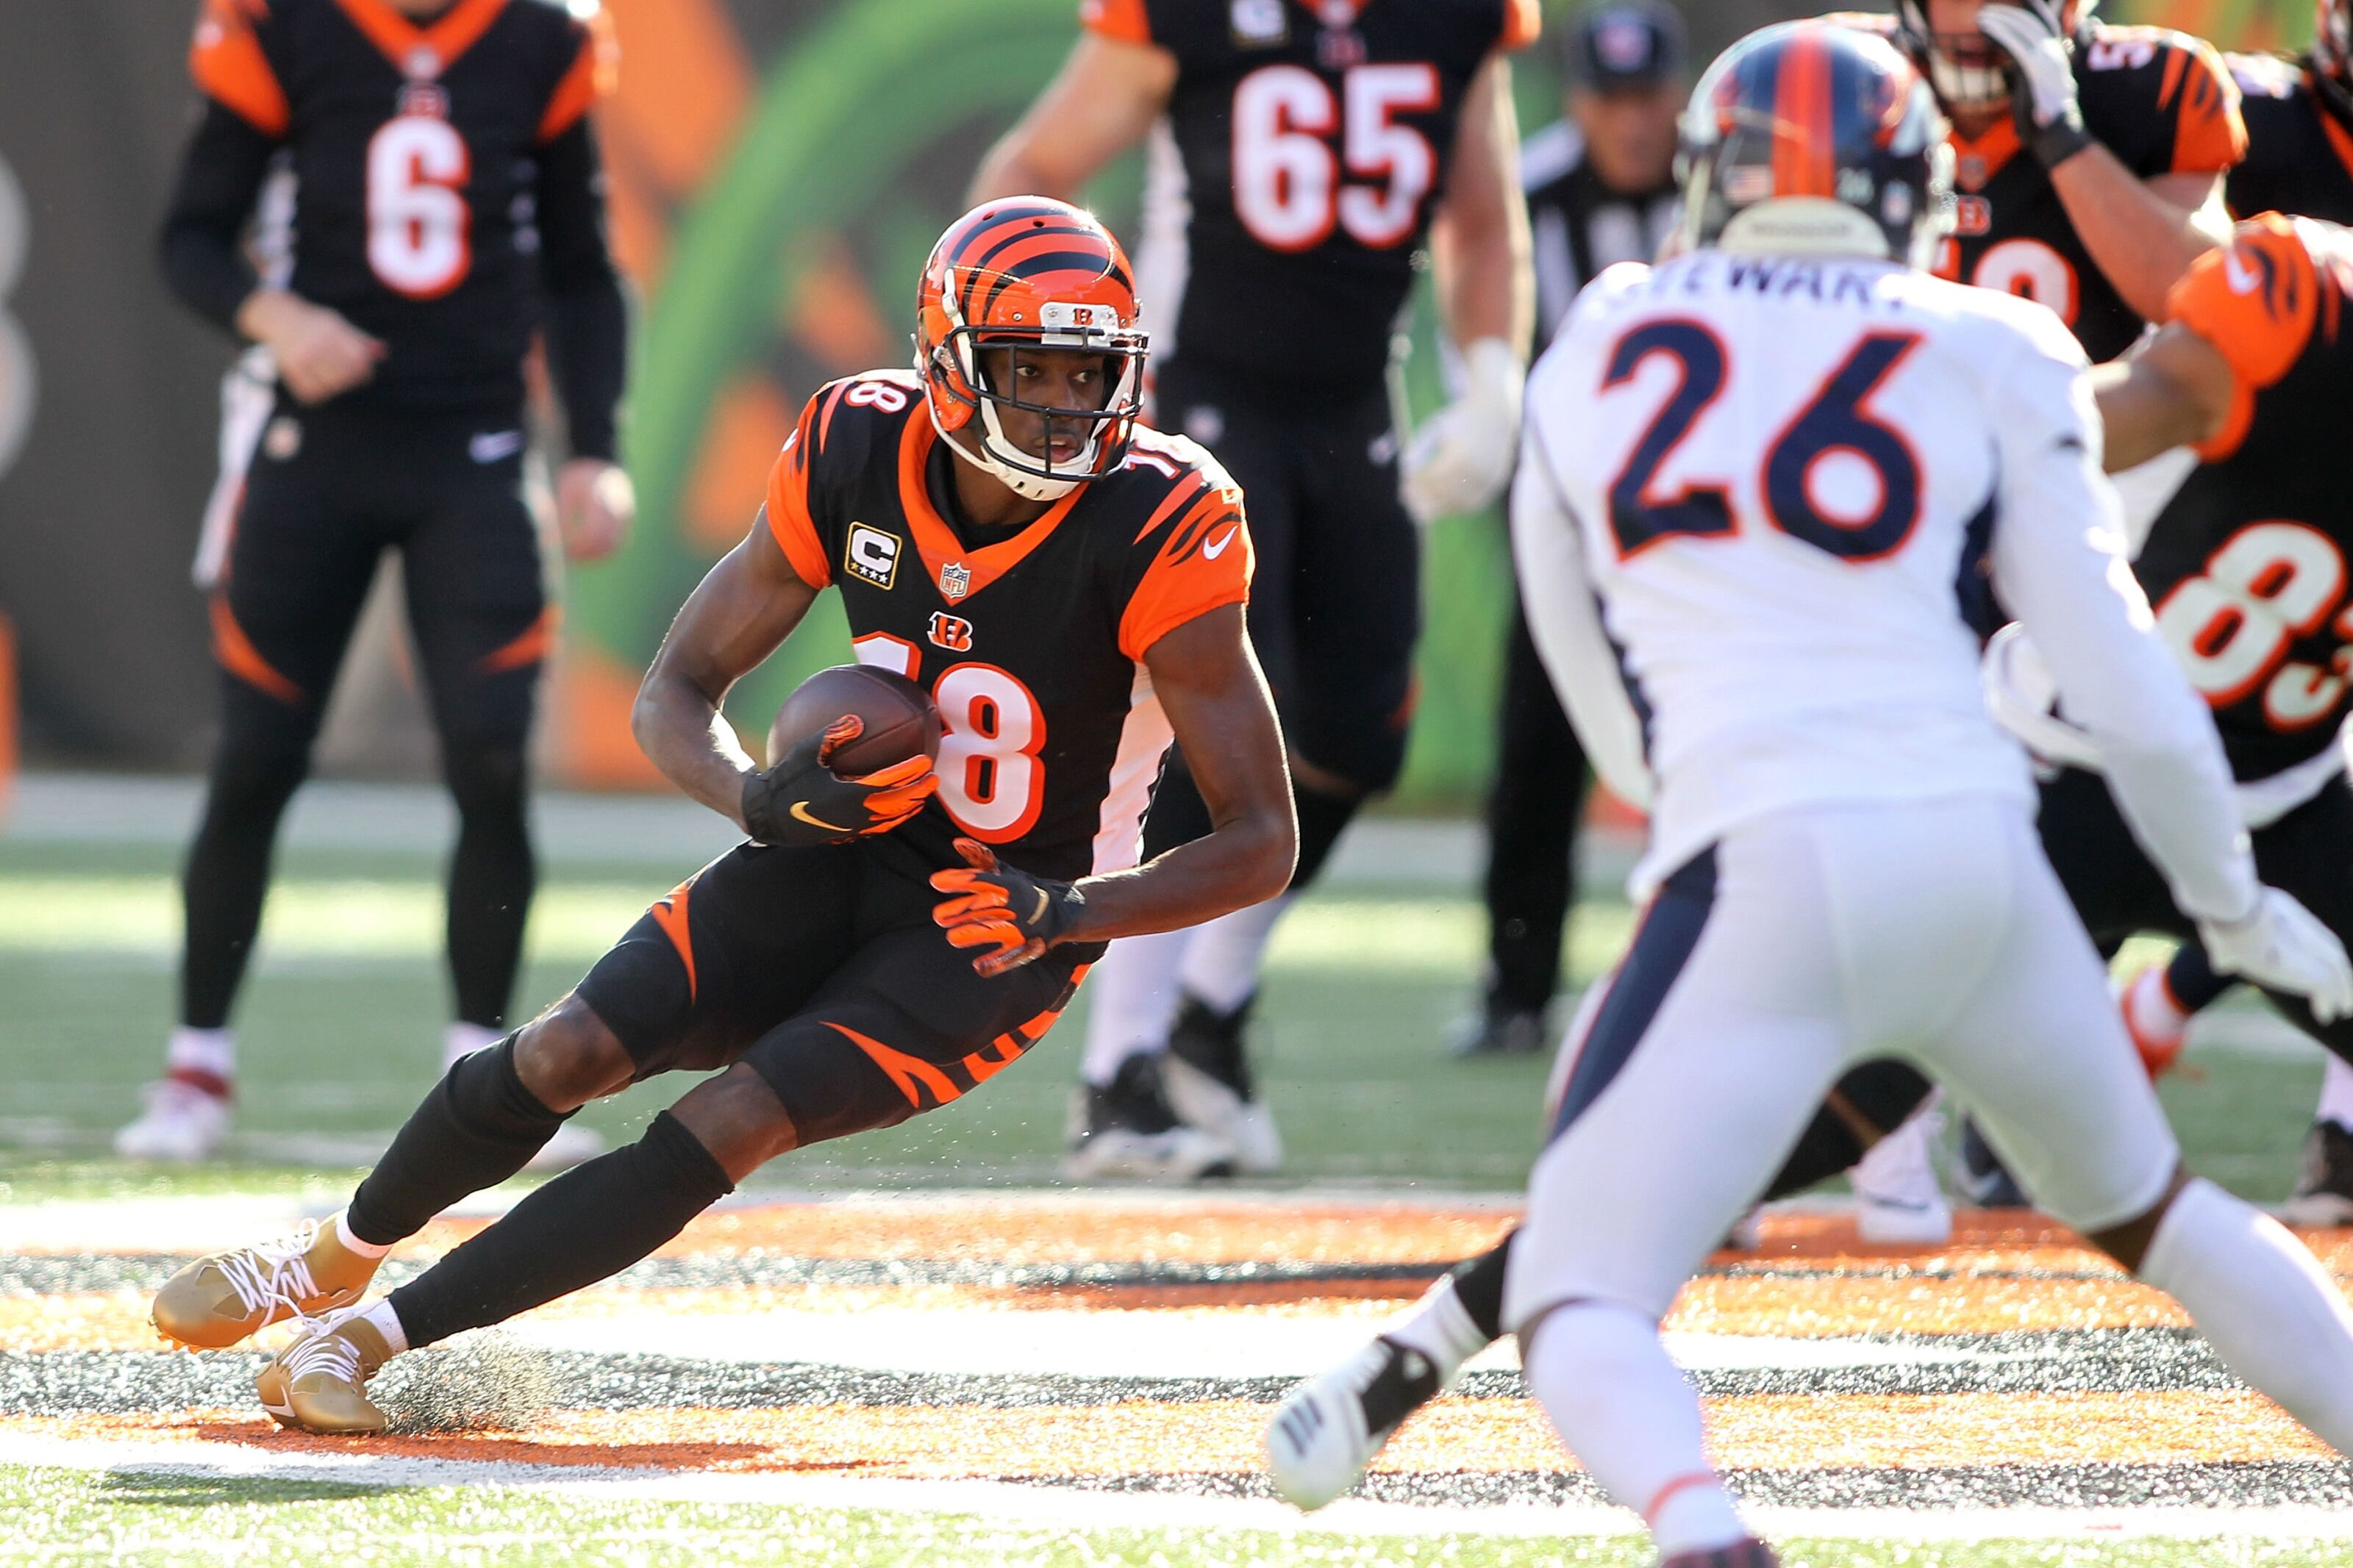 Why A.J. Green is the perfect wide receiver for the 49ers